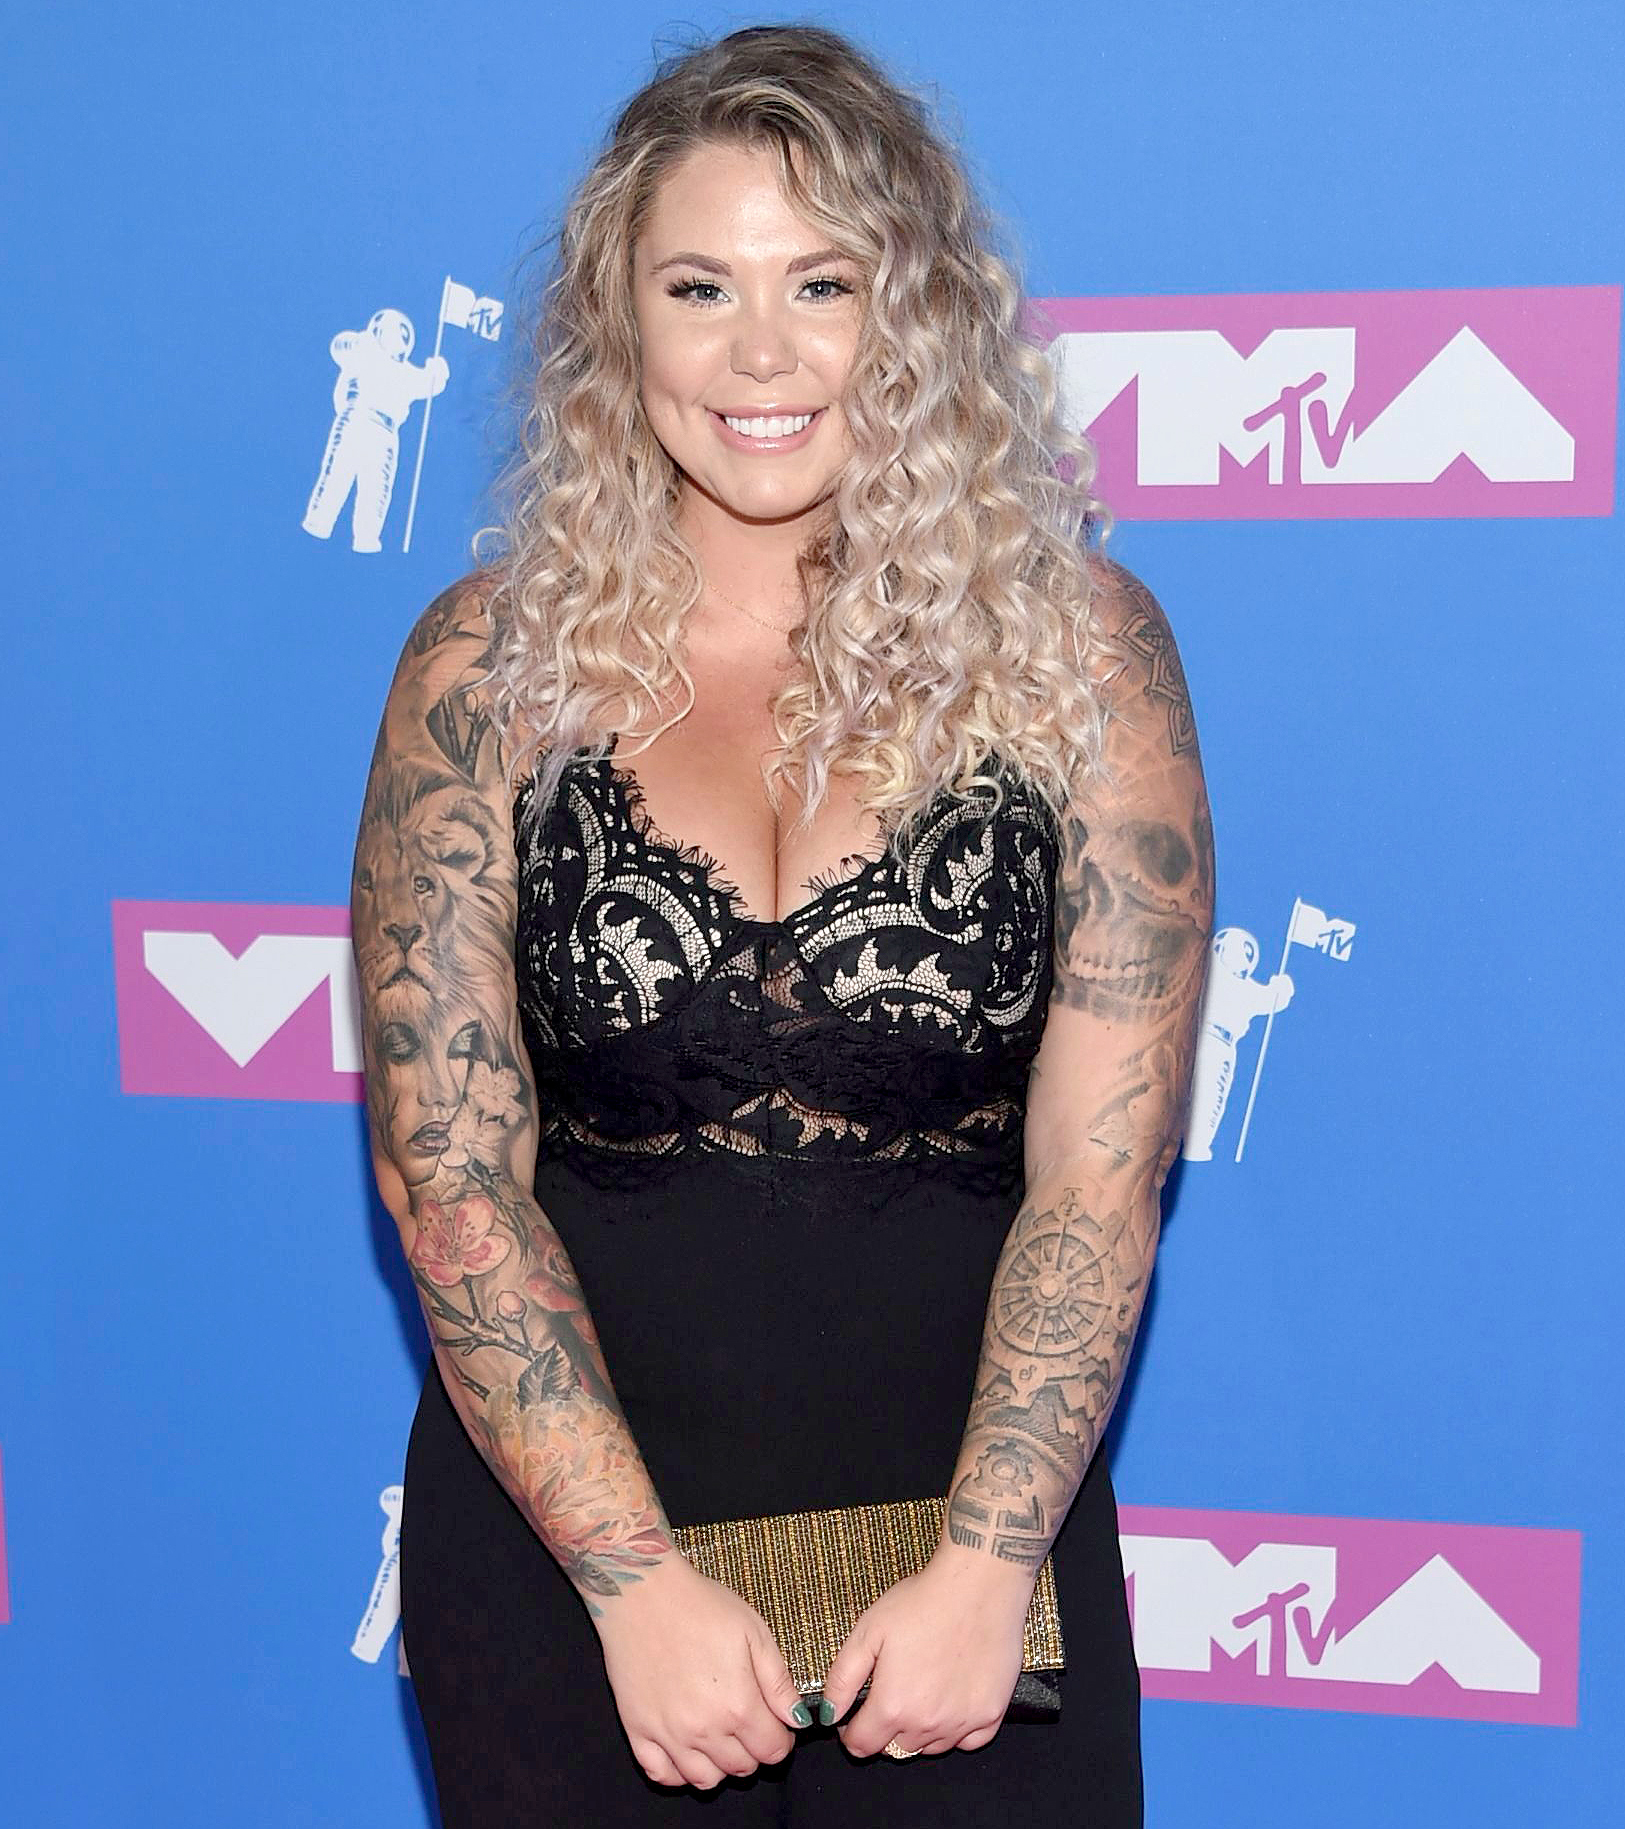 Kailyn Lowry Defends Postpartum Body 2 Months After Son's Birth: I'm 'Proud'